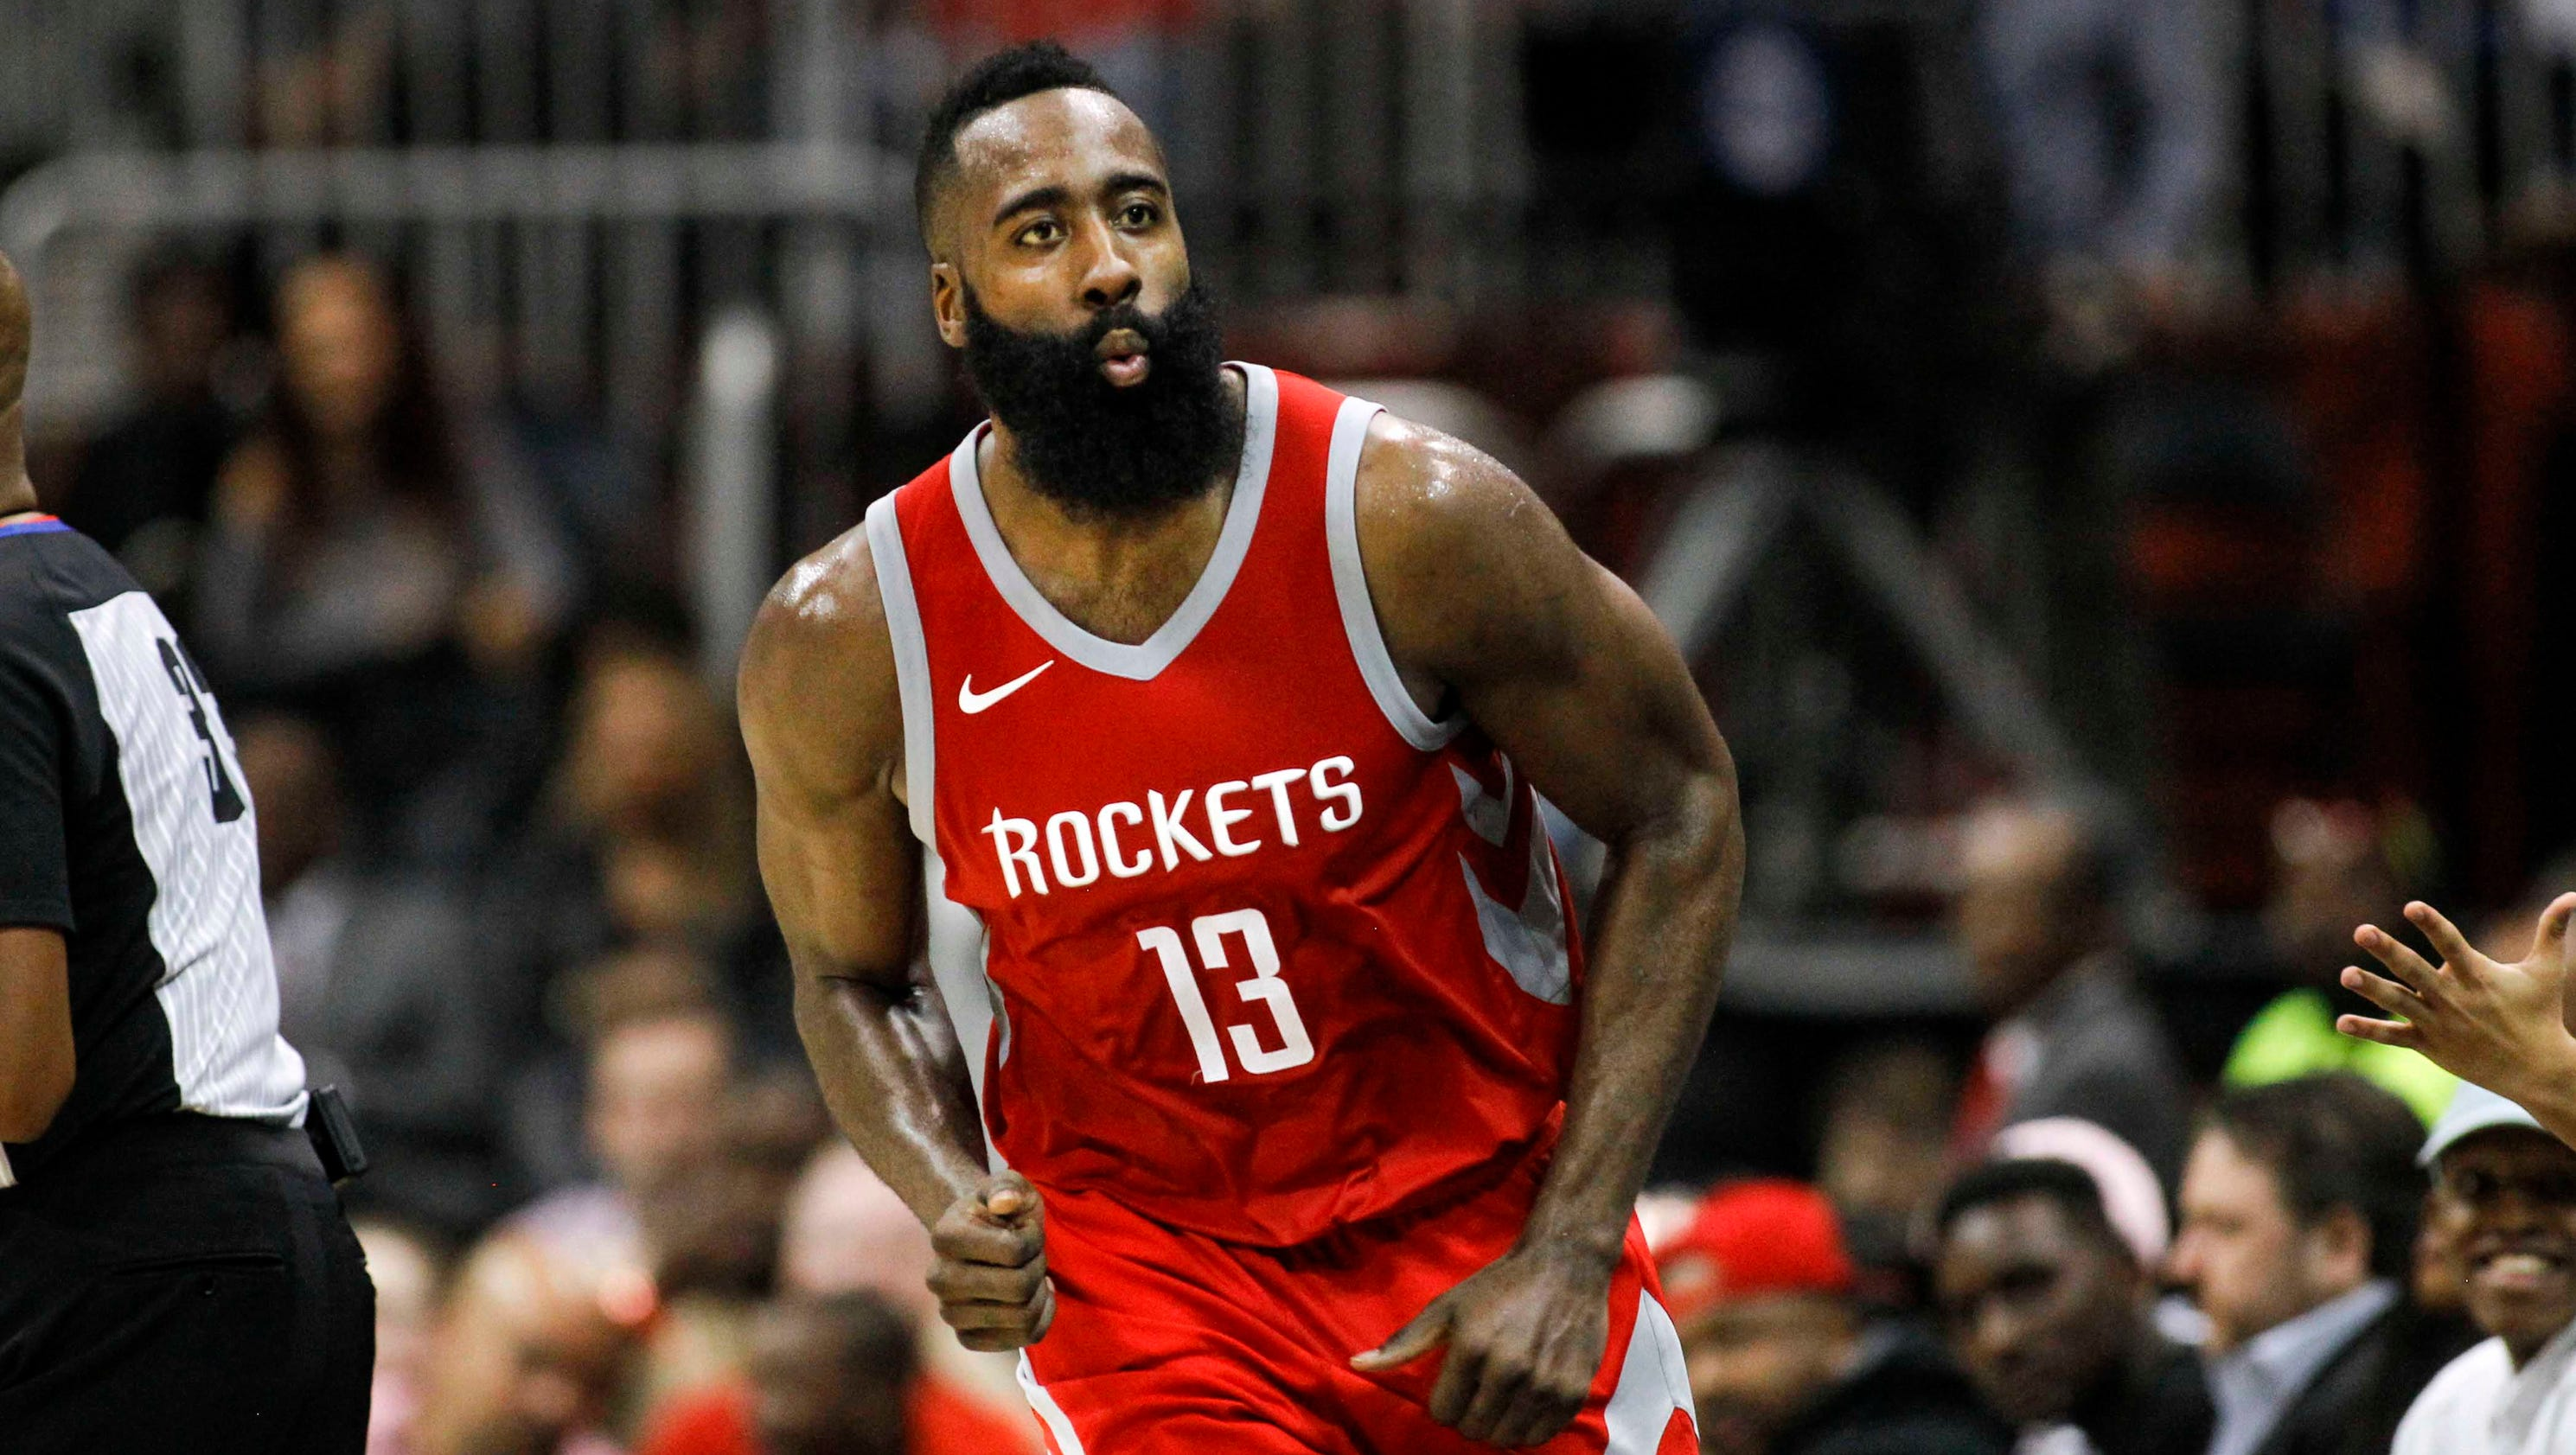 636455154568243334-usp-nba-houston-rockets-at-atlanta-hawks-95064733